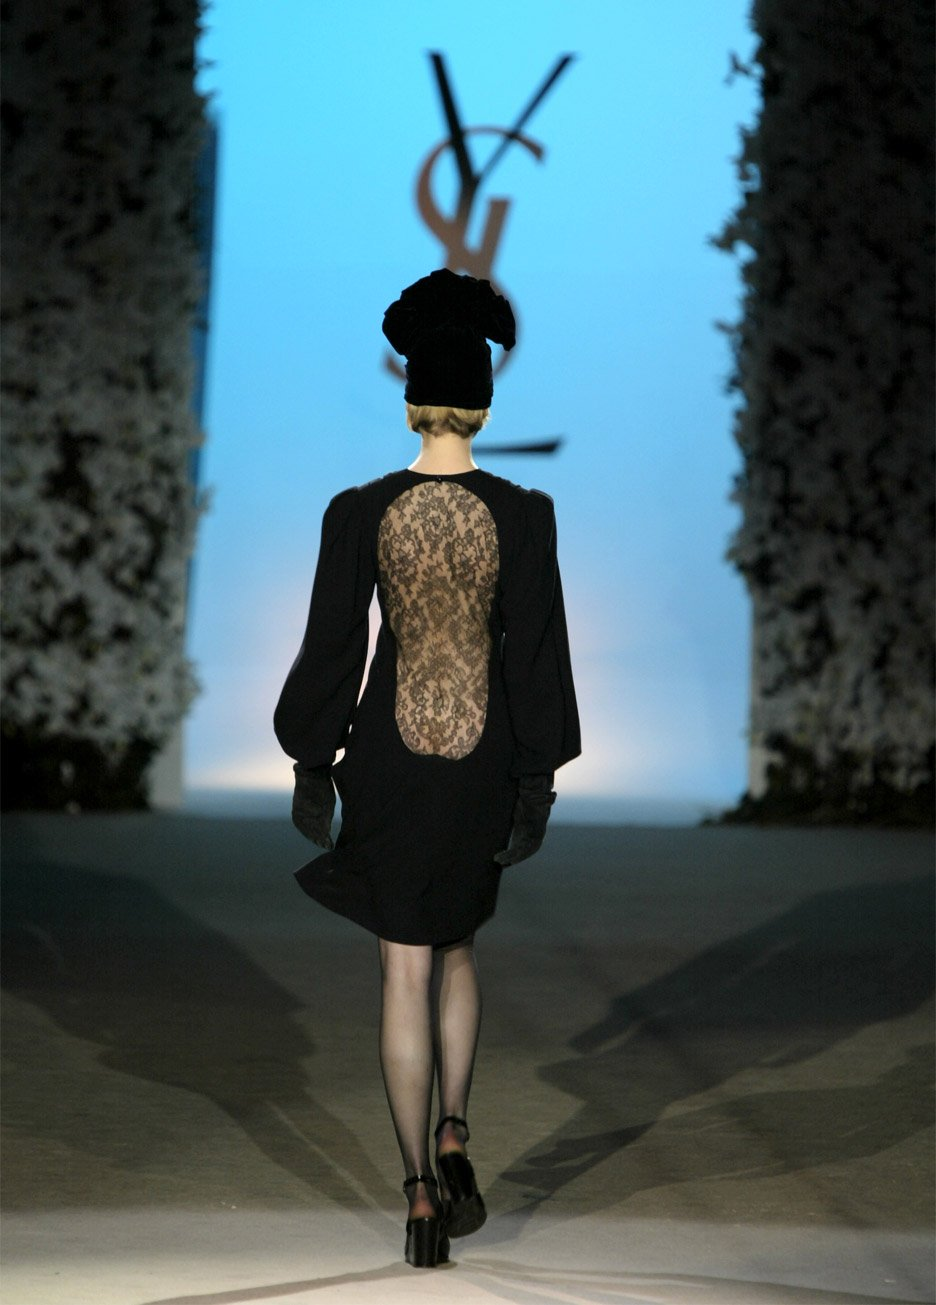 Yves Saint Laurent museum to open in 2017